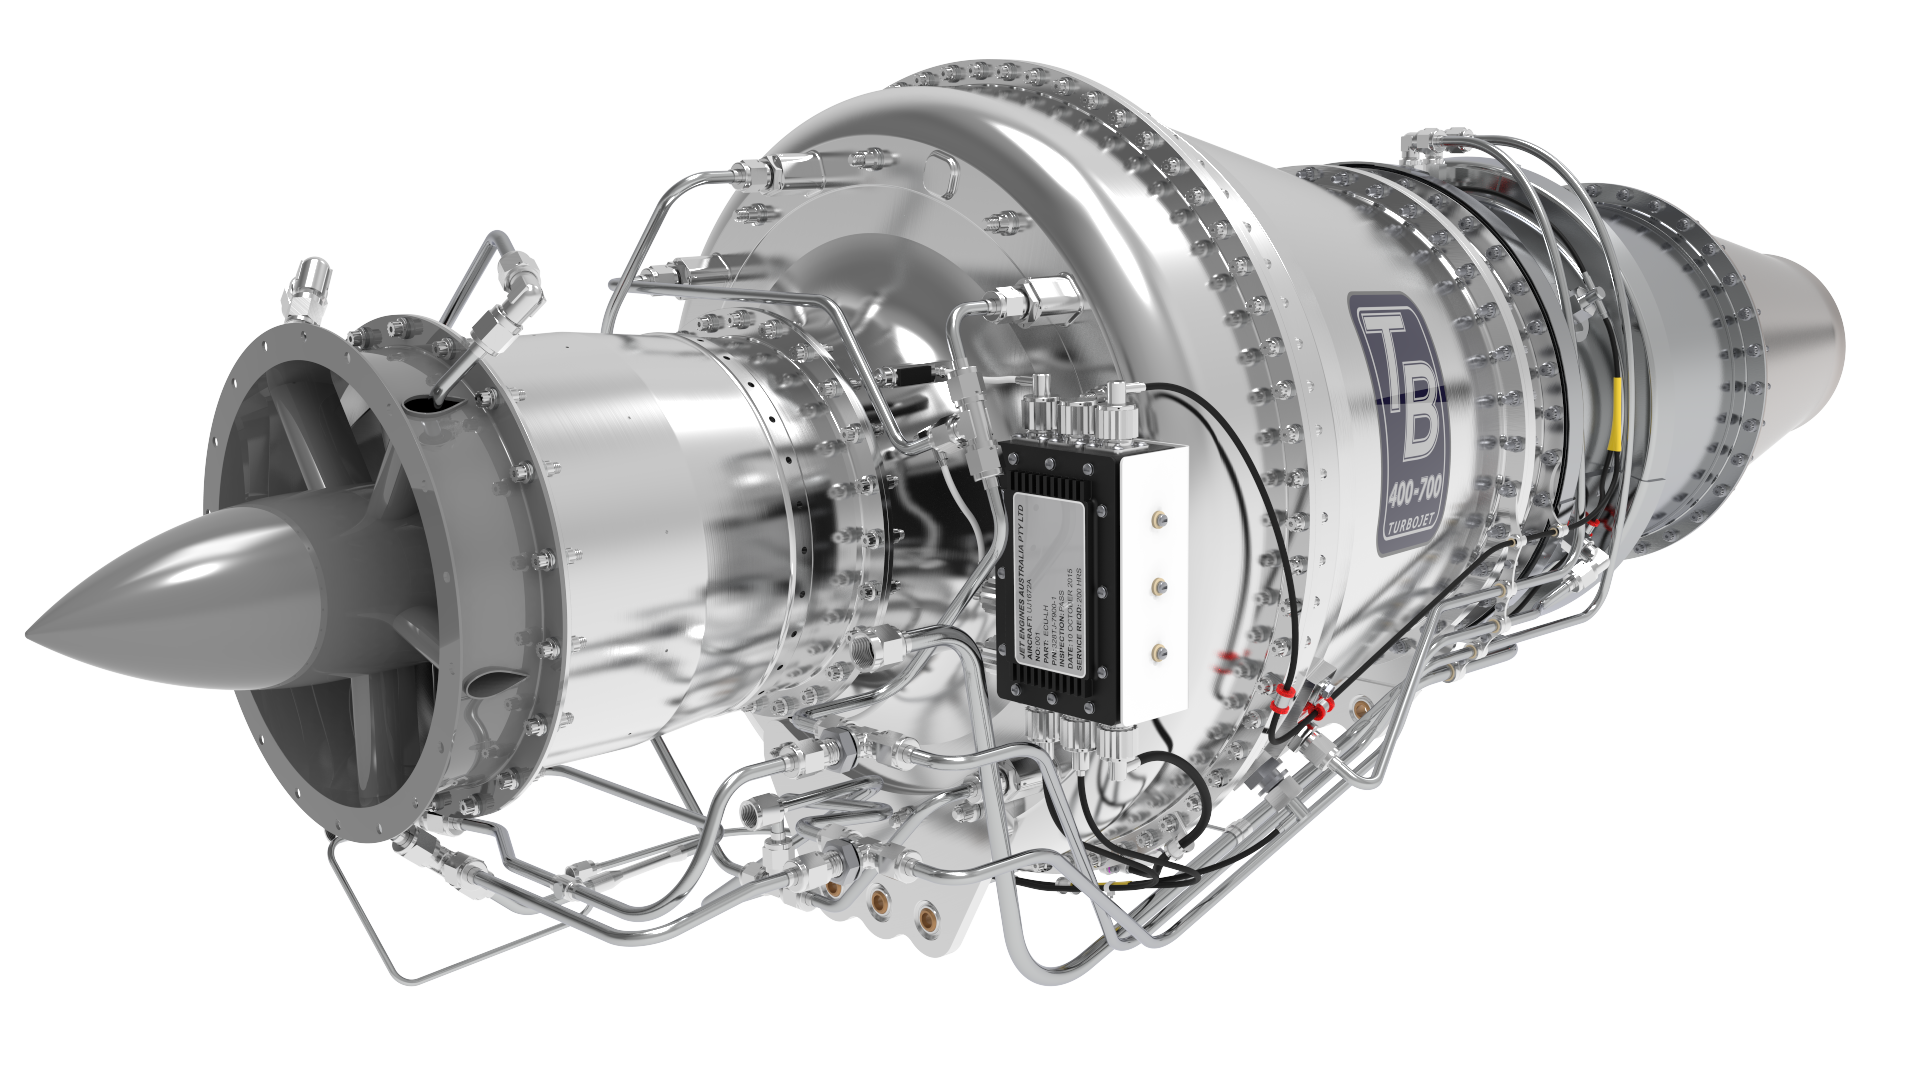 Jet Engine_High Res Renders 1.12